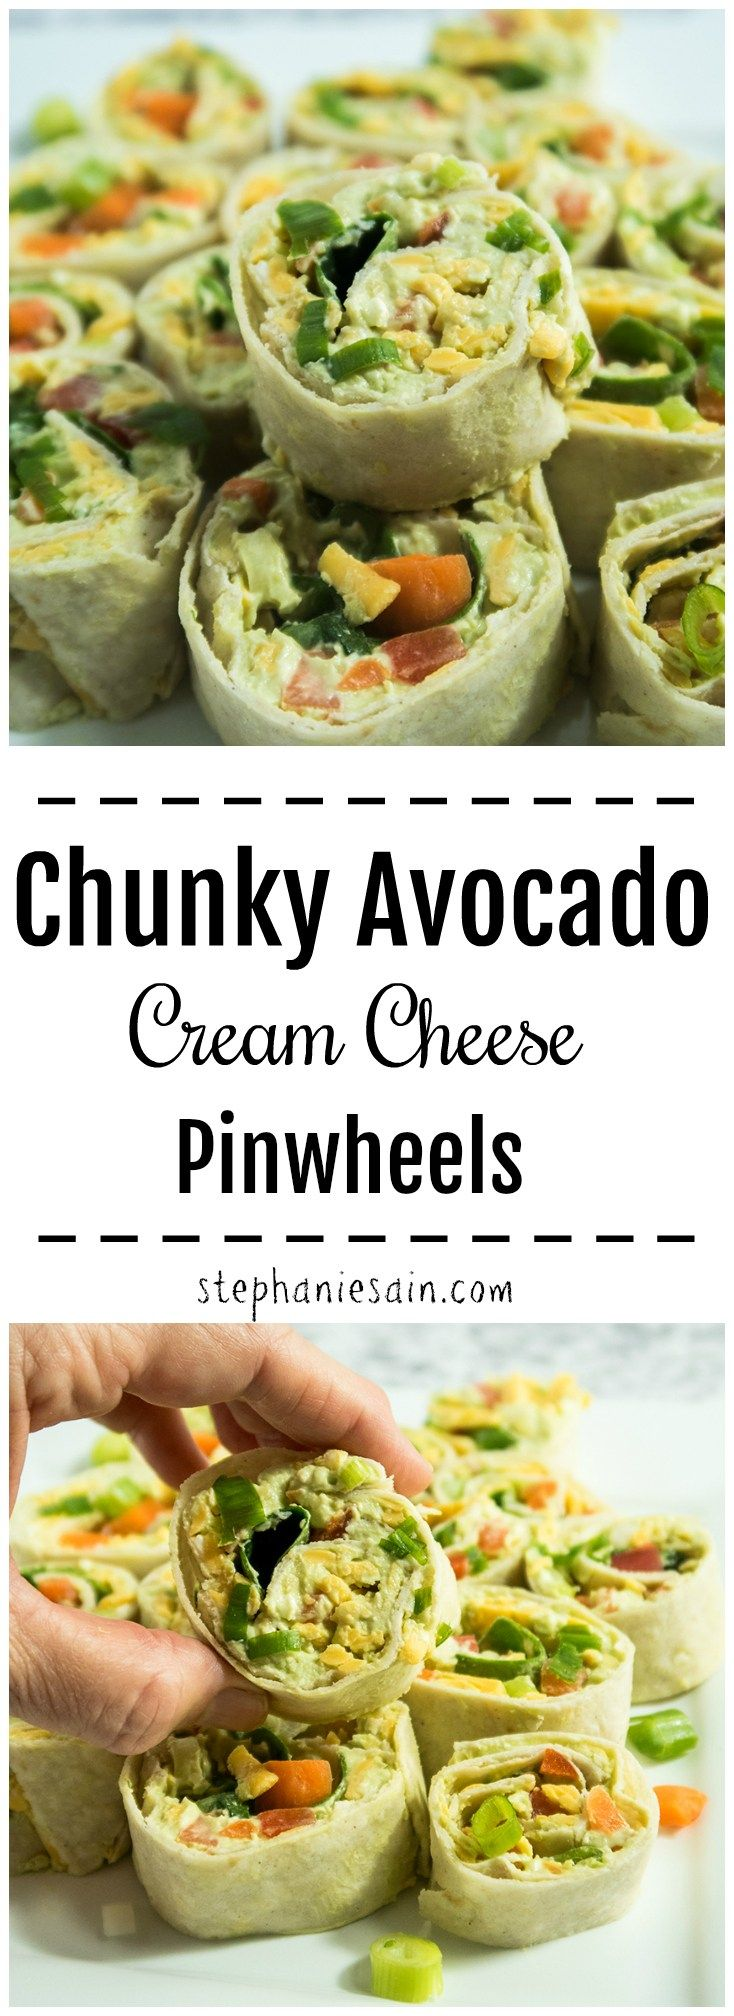 Chunky Avocado Cream Cheese Pinwheels are made with a tasty avocado spread and then loaded with all your favorite veggies. The perfect bite sized snack or even appetizer for entertaining. Gluten free & Vegetarian. (Vegan Appetizers Pinwheels)